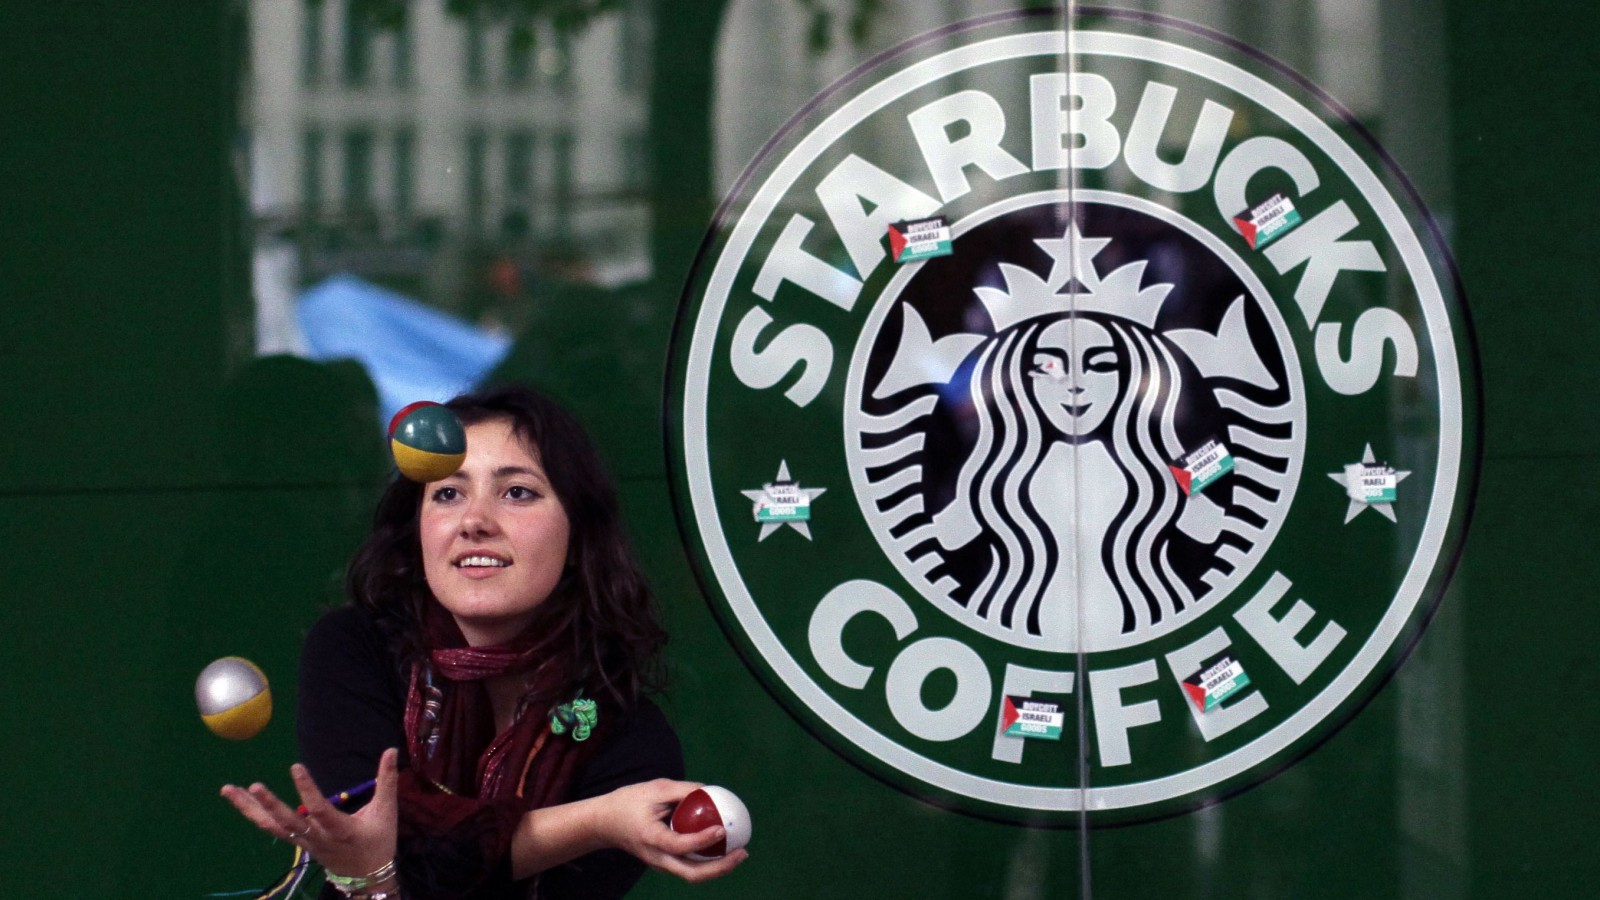 A French supporter of the Occupy London Stock Exchange movement who gave her name as Estelle de Marseille, stating that it's the name she goes by but not her real name, juggles outside a branch of the Starbucks coffee chain beside the protest camp outside St Paul's Cathedral London, Thursday, Oct. 27, 2011